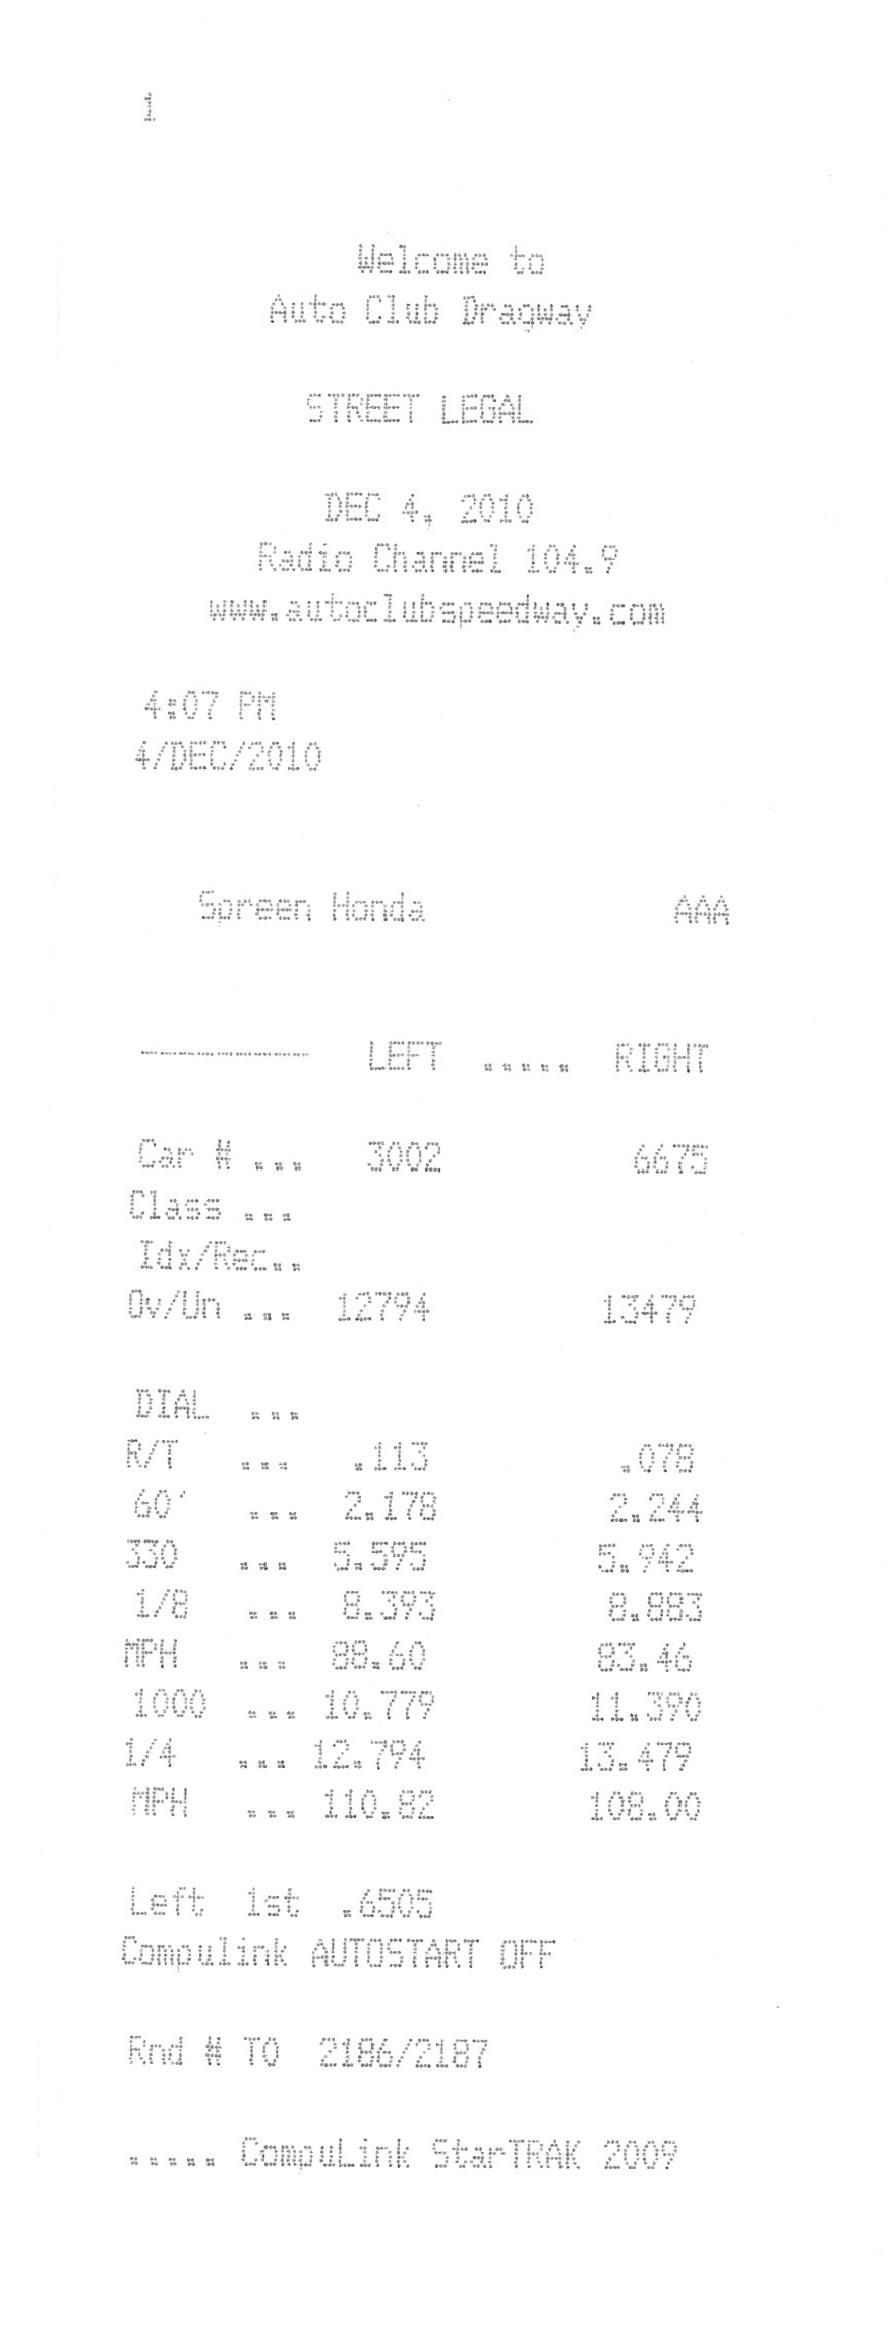 Mercedes-Benz 500E Timeslip Scan